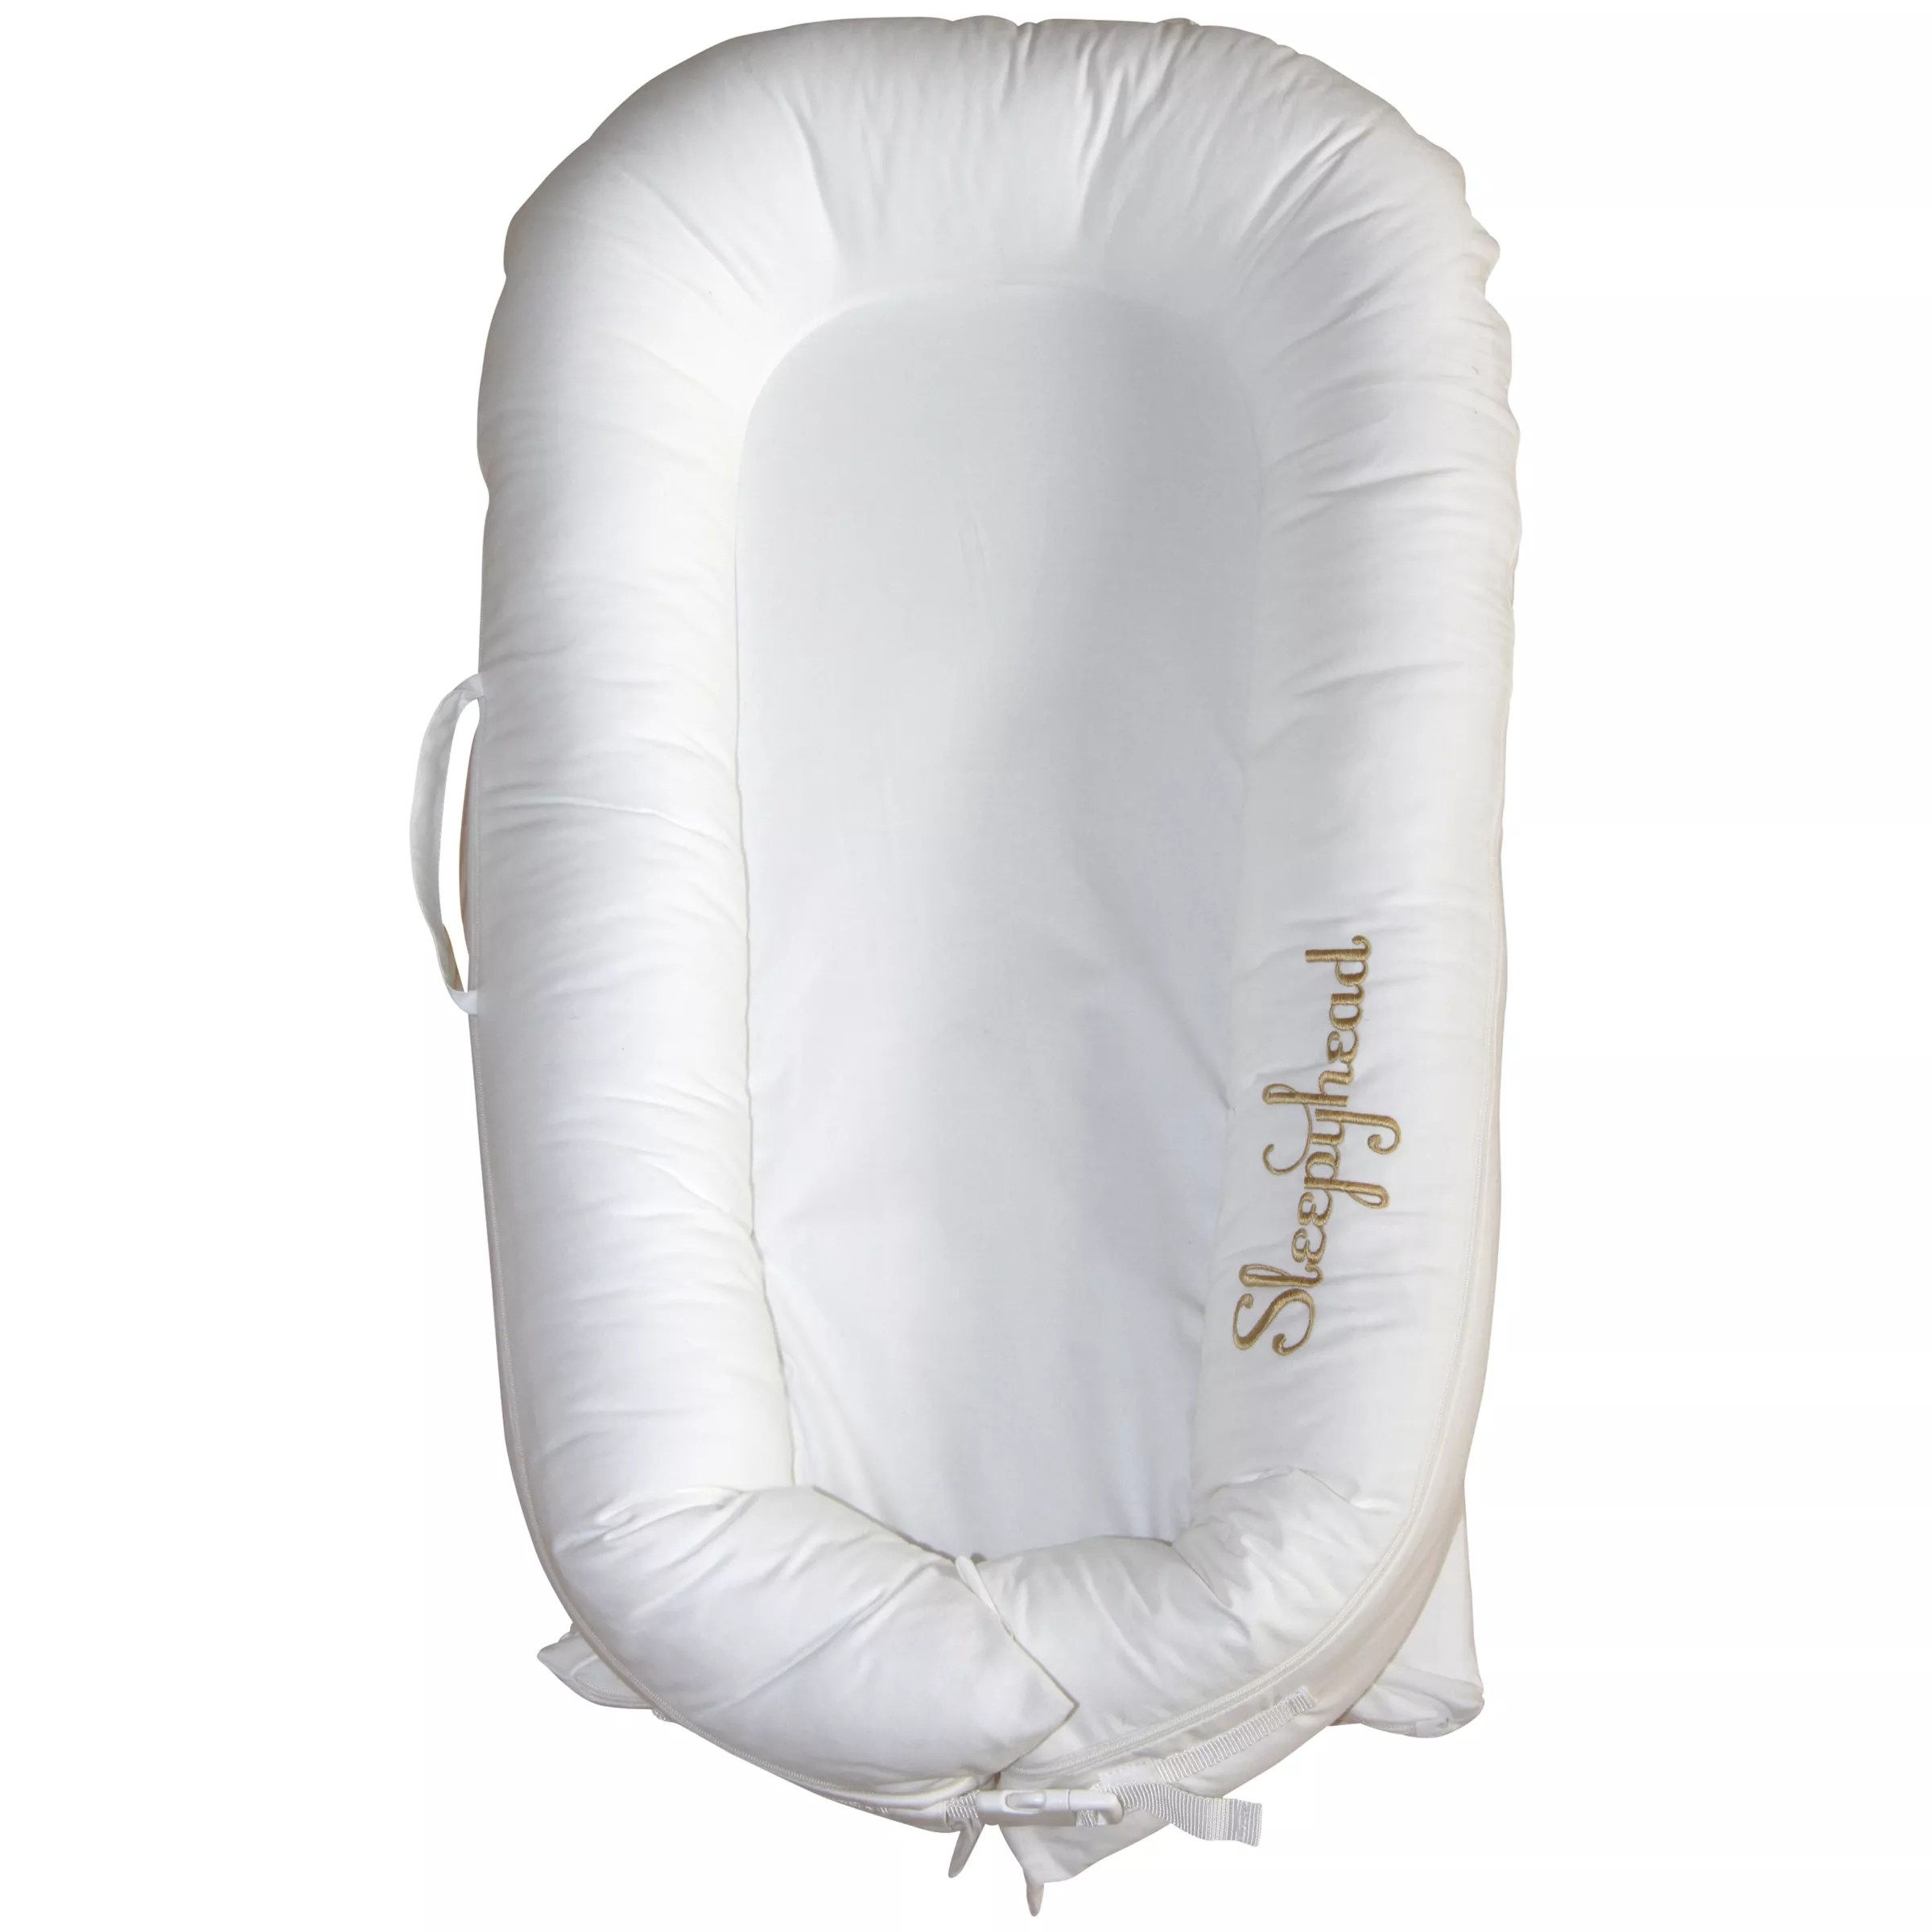 Baby Travel Mattress Sleepyhead Deluxe Portable Baby Pod White At John Lewis Partners